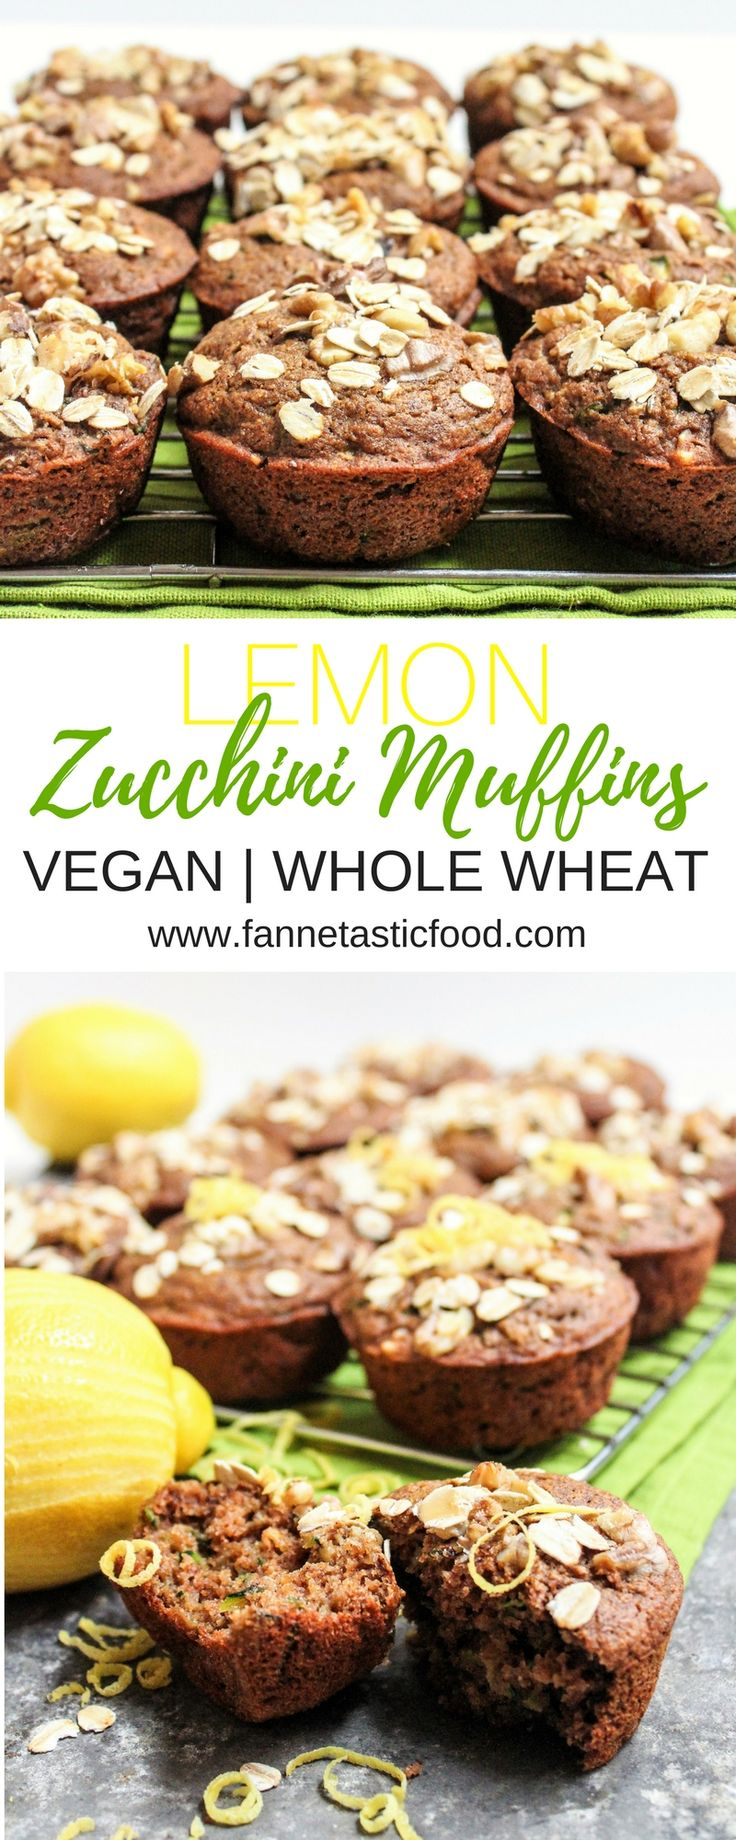 These vegan Lemon Zucchini Muffins are so easy and delicious! You'll never guess they're 100% whole wheat and packed with veggies. Perfect for a healthy breakfast or portable snack!